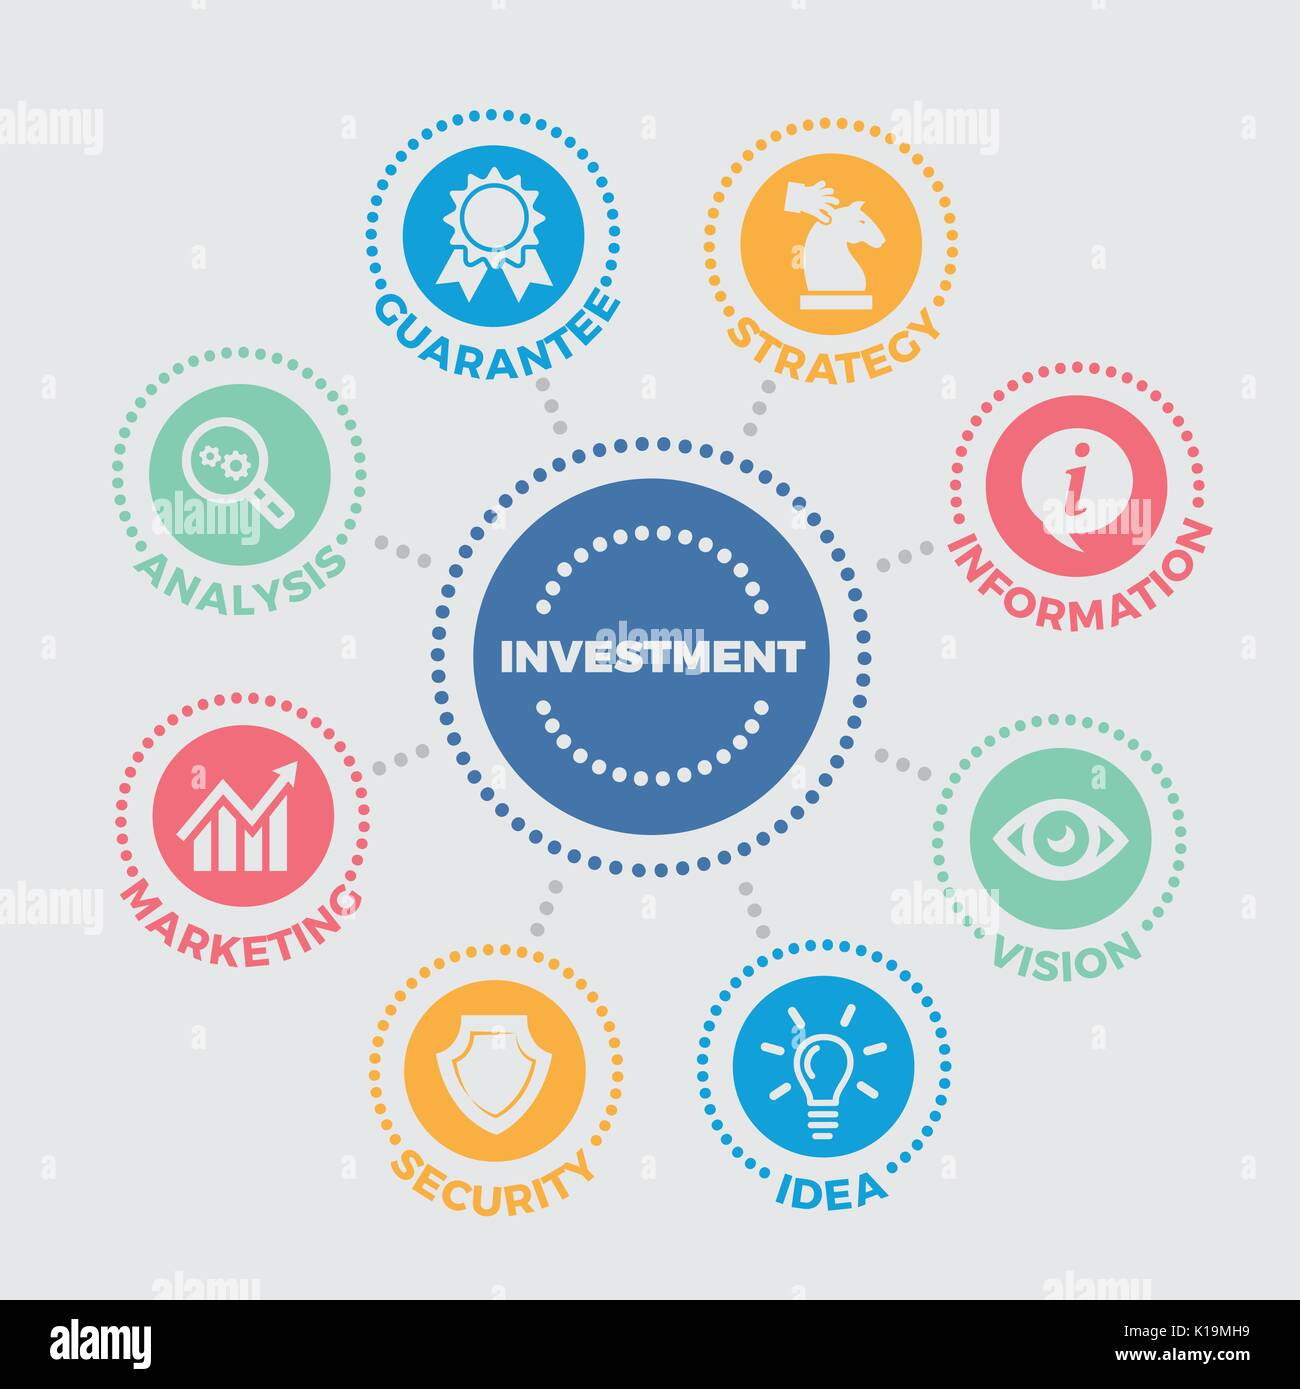 Investment Illustration with icons - Stock Image